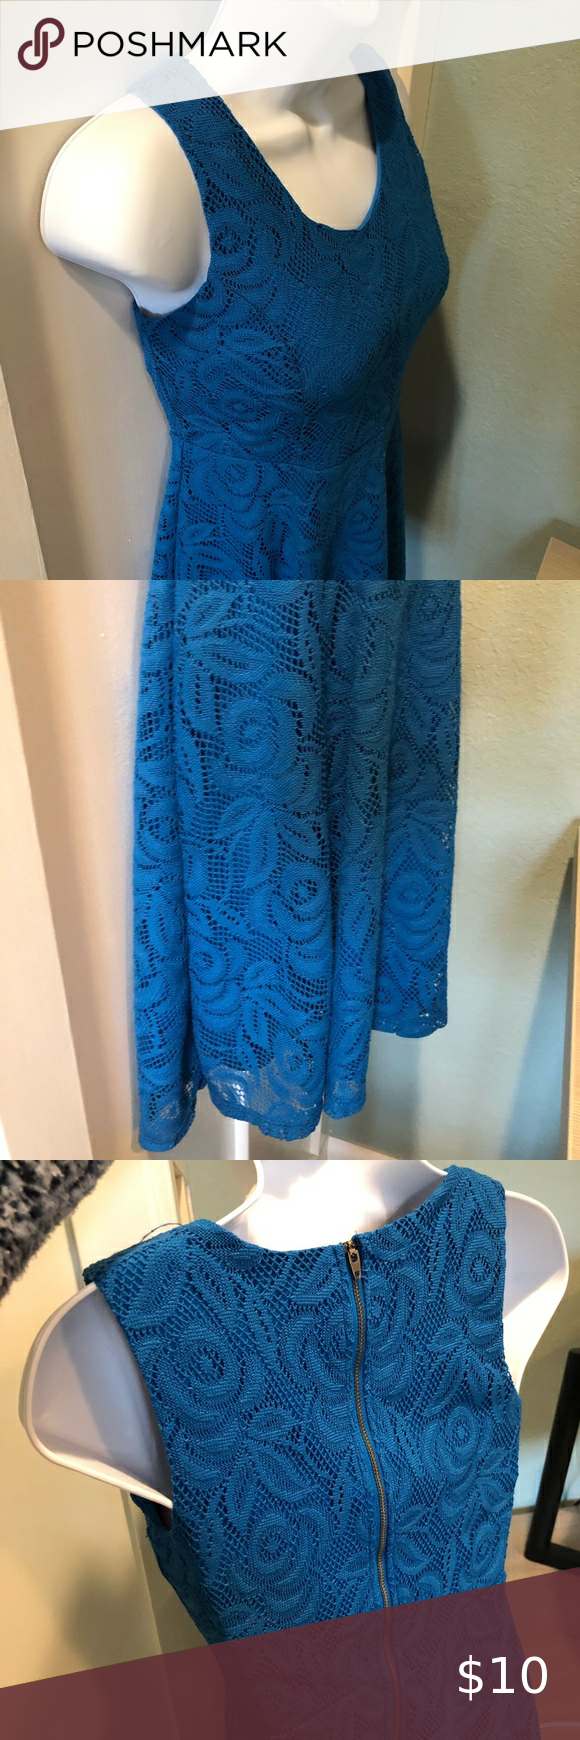 Blue Lace Dress Size Lg 10 12 Blue Lace Dress From Cherokee Target This Dress Has Wide Tank Top Straps So It Passes Sch Lace Blue Dress Lace Dress Dresses [ 1740 x 580 Pixel ]